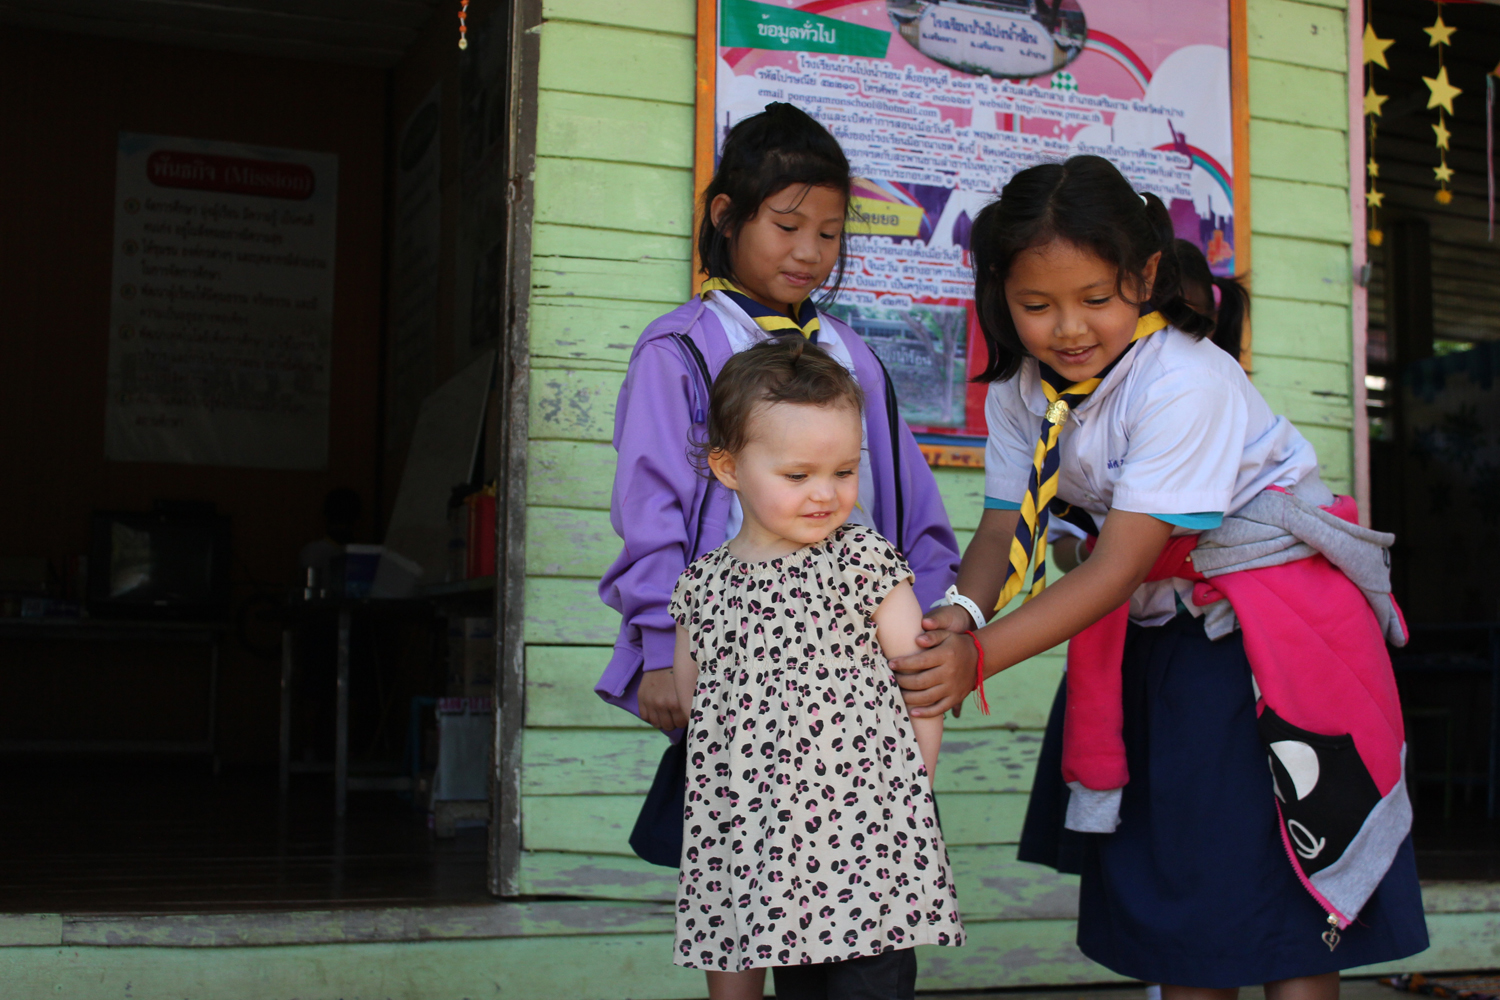 The daughter of Lauri and Duara co-founder Annika in Pong Nam Ron, Thailand